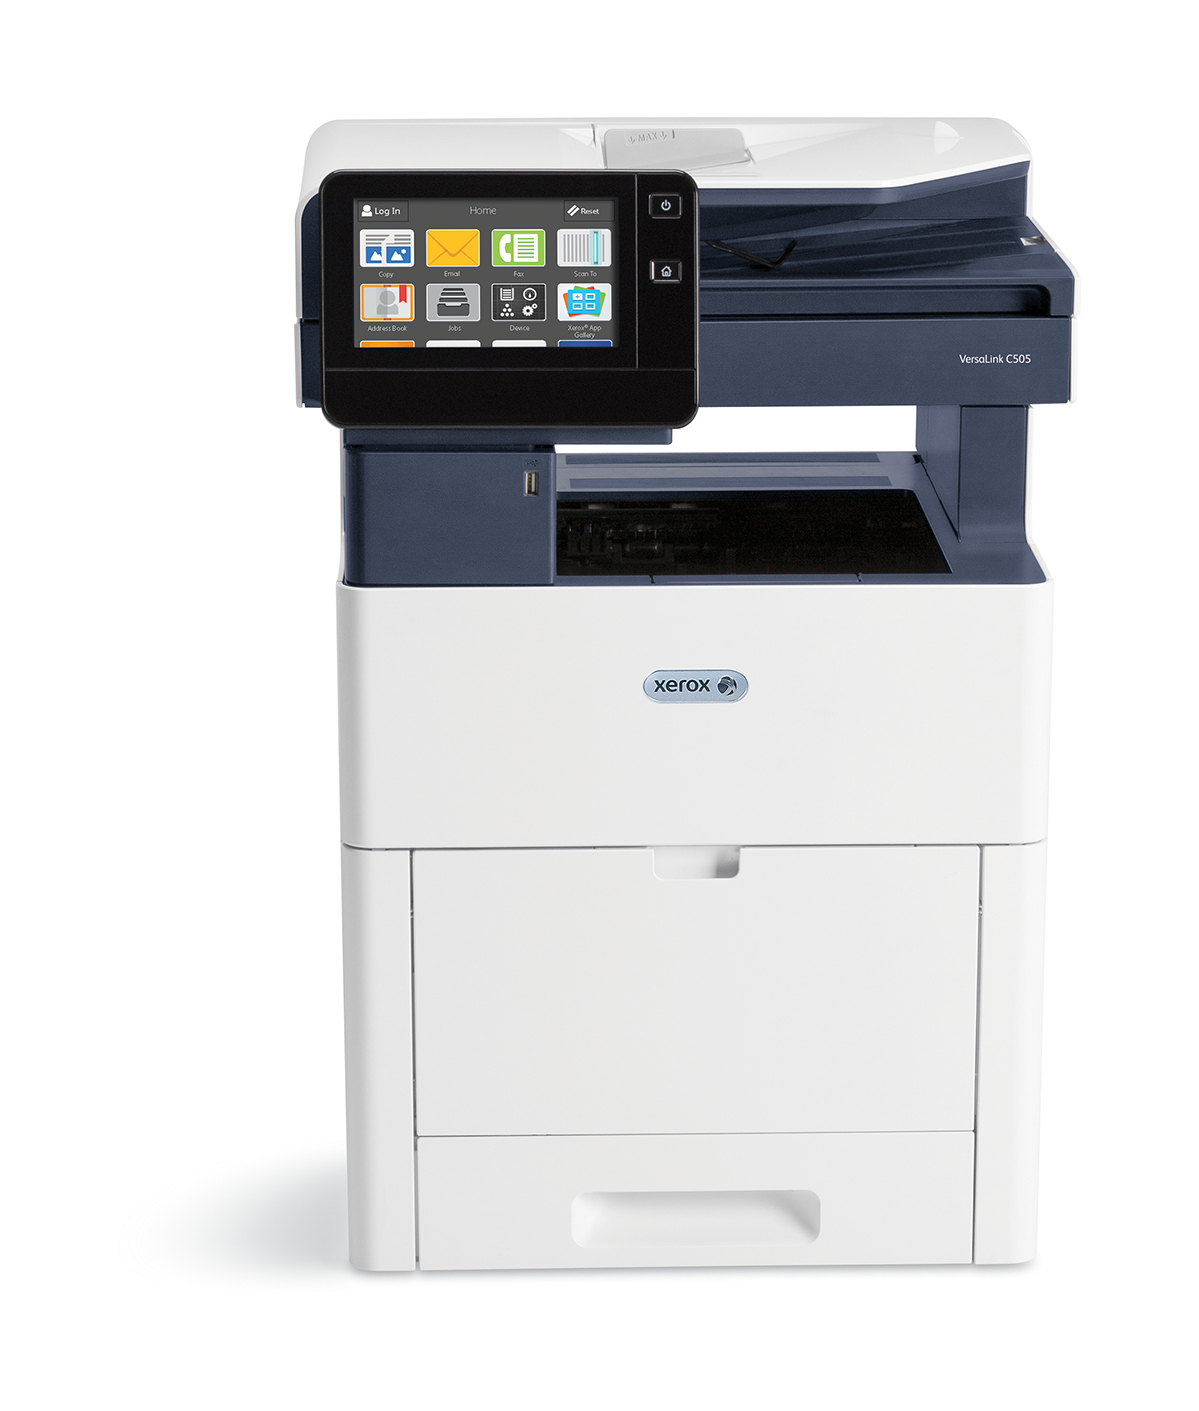 Xerox VersaLink C505 X  Printer/Copier/MFP/Scanner/Fax- Colour - Laser - A4/Legal - 1200 X 2400 Dpi - Up To 45 Ppm (mono) / Up To 45 Ppm (colour) - Capacity: 700 Sheets. Up To 120,000 Images/ - C2000